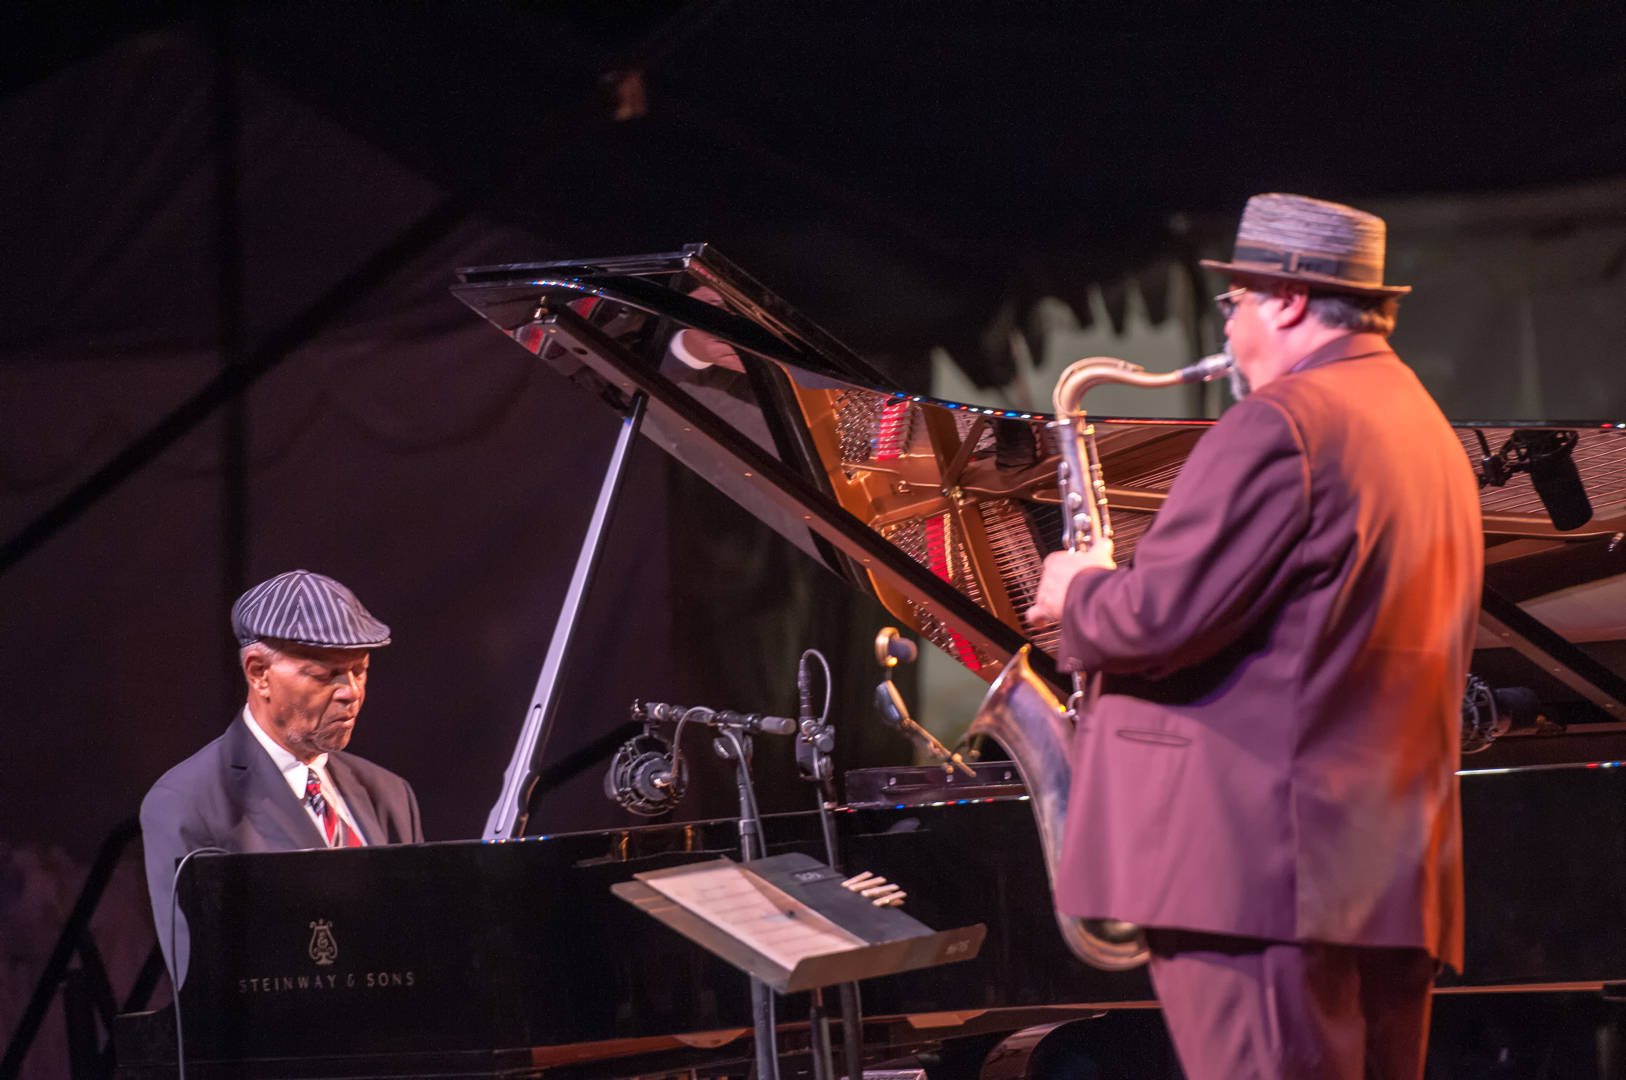 Mccoy tyner and joe lovano at the scottsdale performing arts center